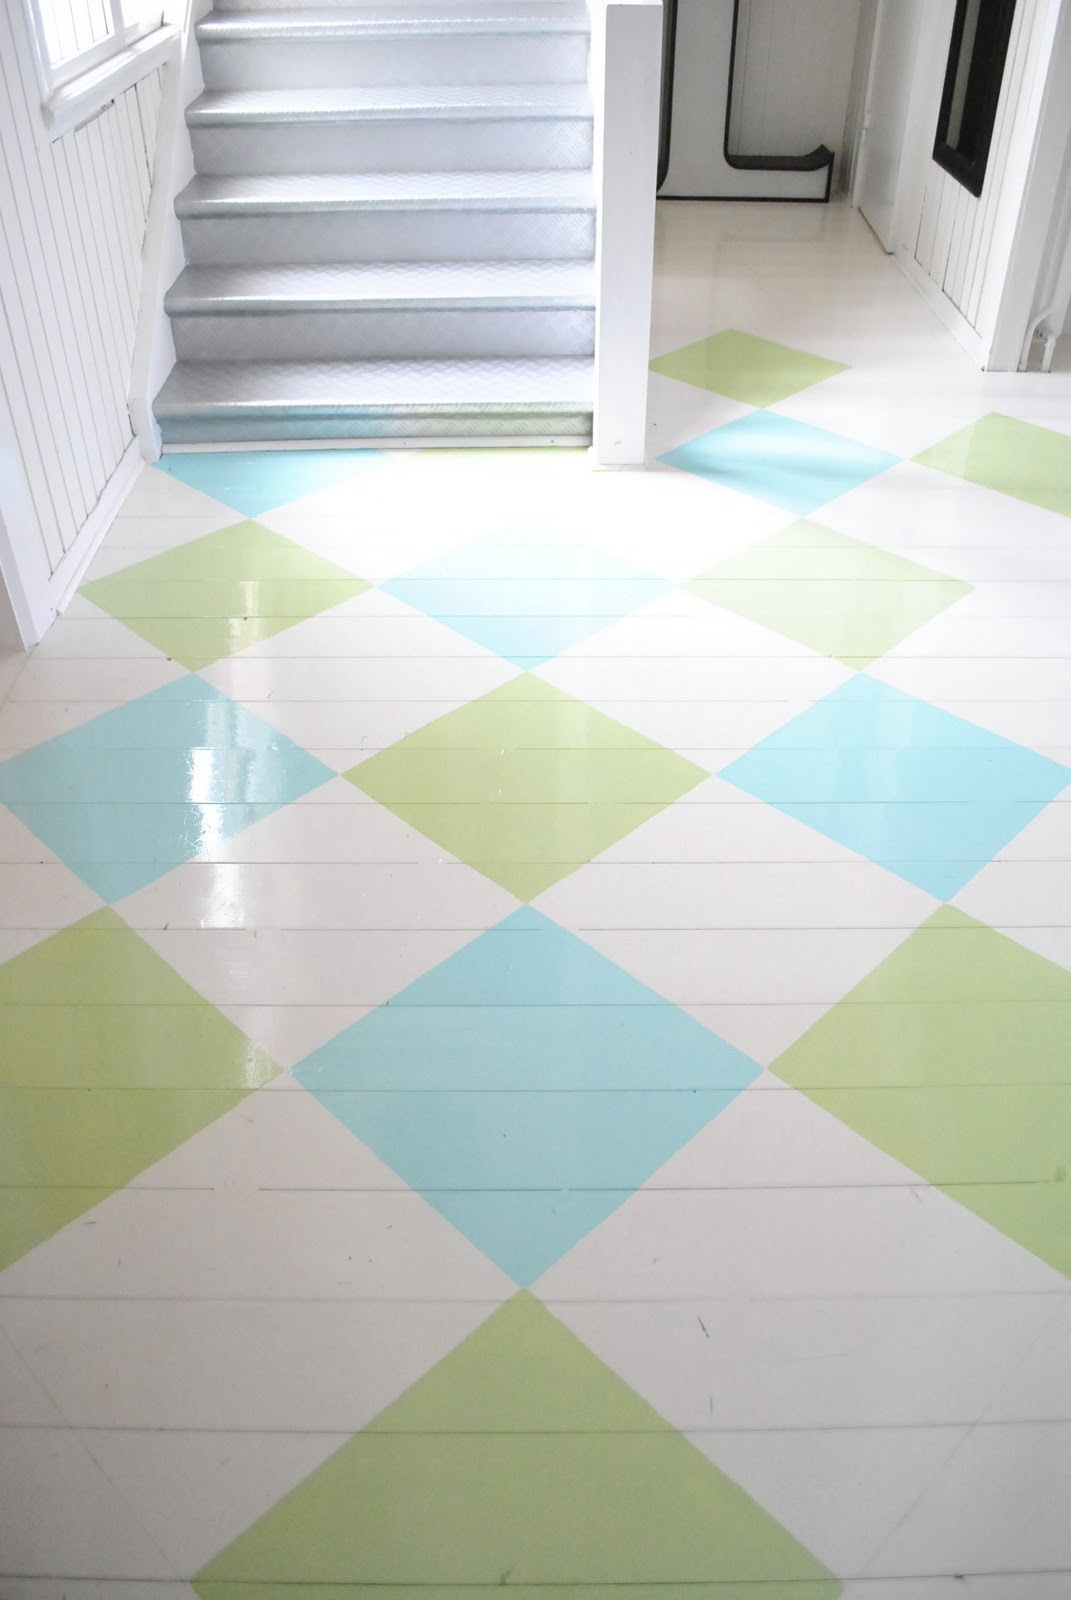 Floored Painted Floor Ideas Amp Projects The Budget